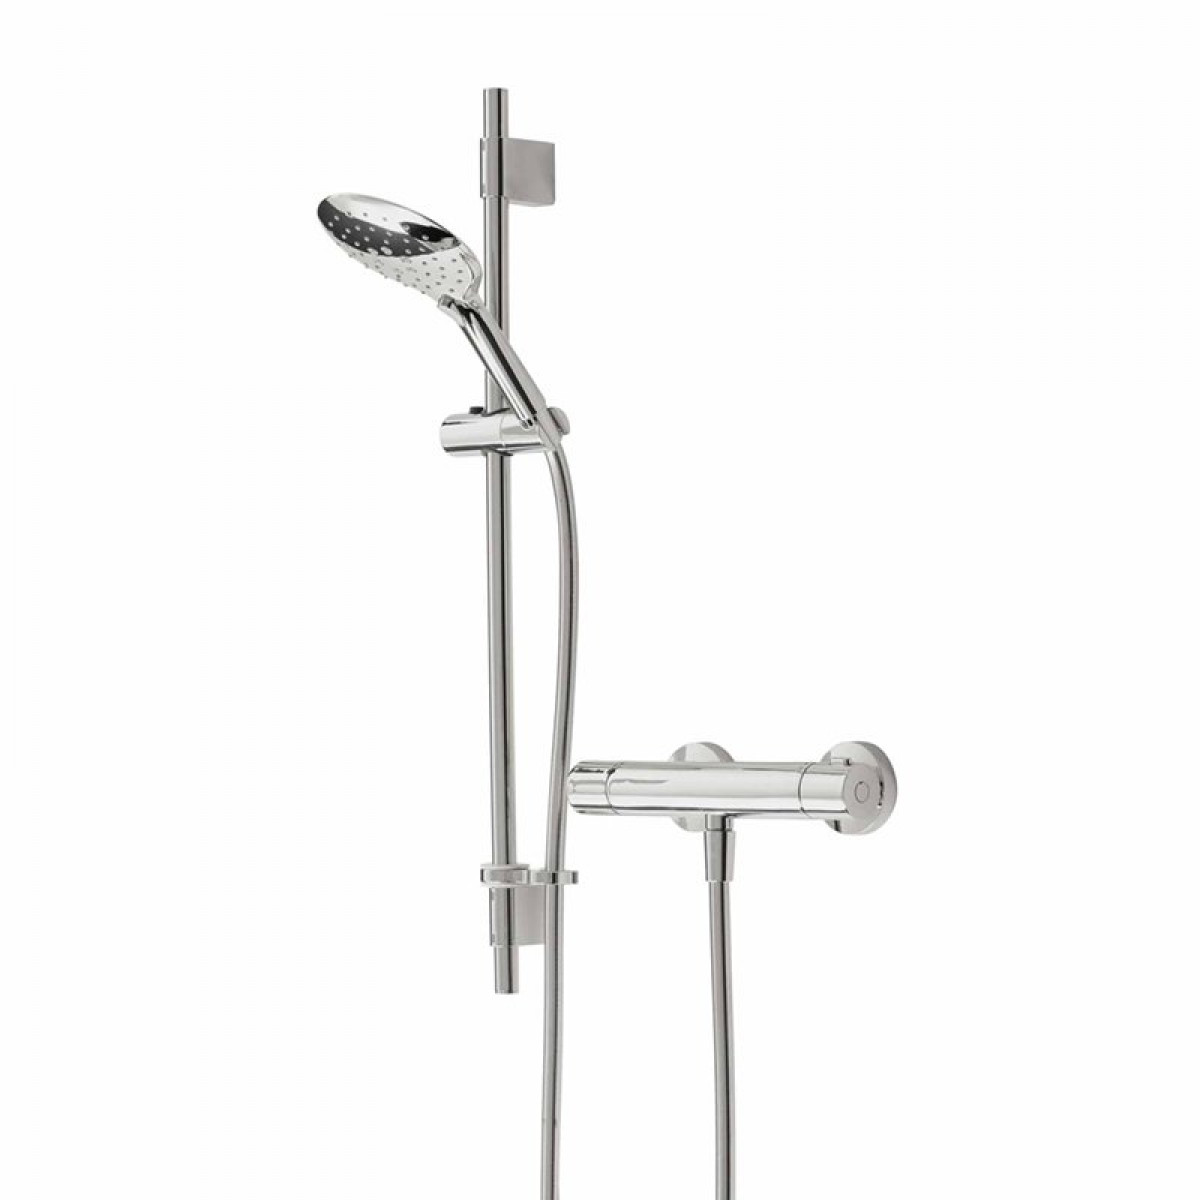 Bristan QST SQSHXAR C Quest Thermostatic Exposed Single Control Shower Valve with Adjustable Riser Kit Chrome Plated